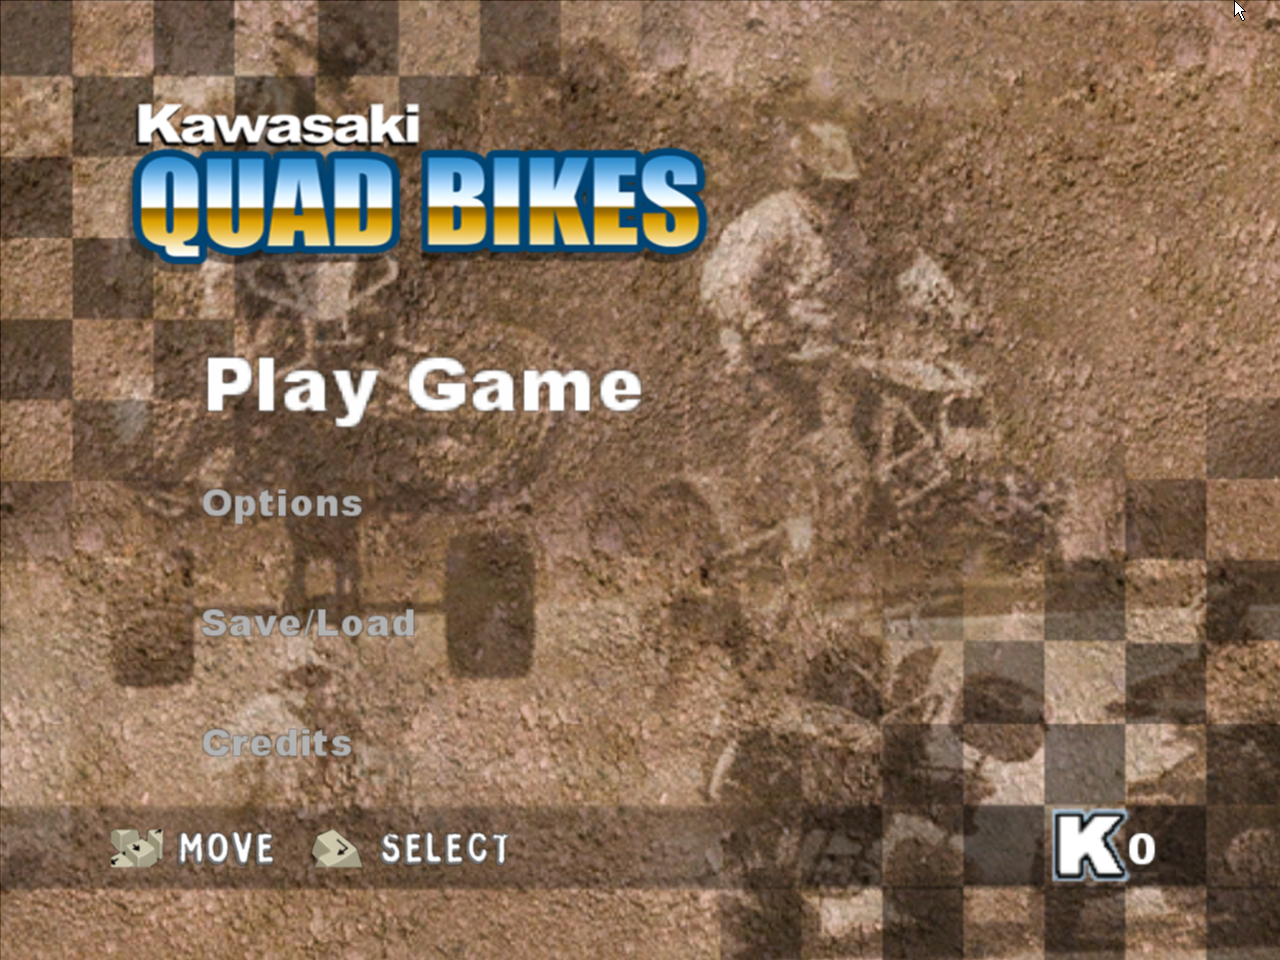 Kawasaki Quad Bikes Windows Title Screen